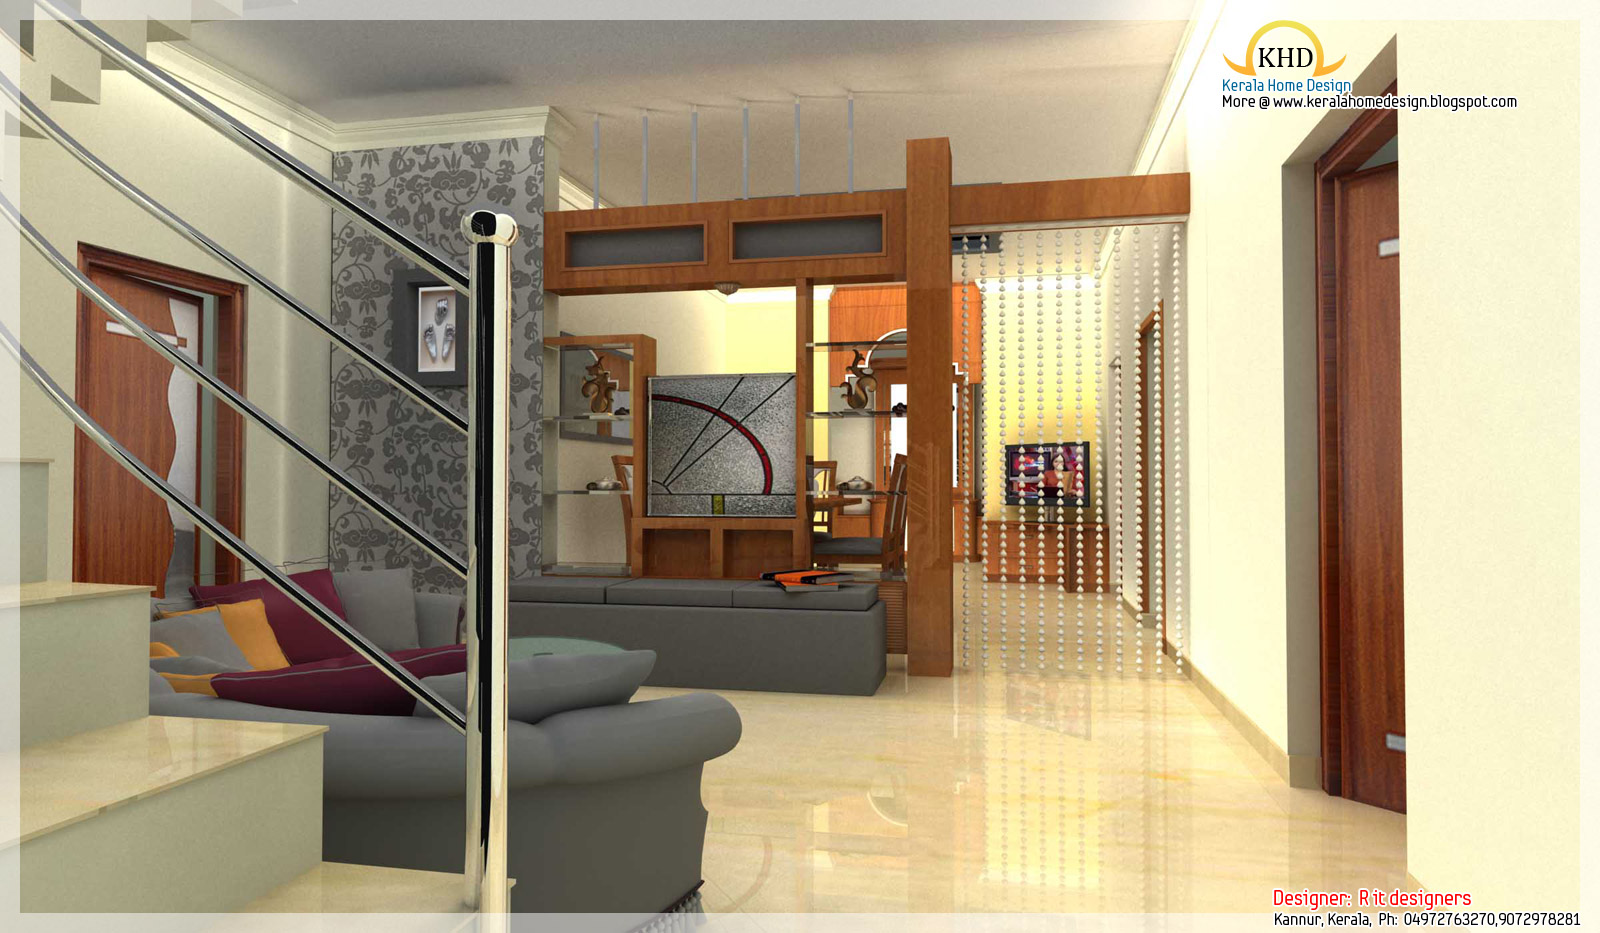 Interior design idea renderings kerala home design and for Internal house design ideas